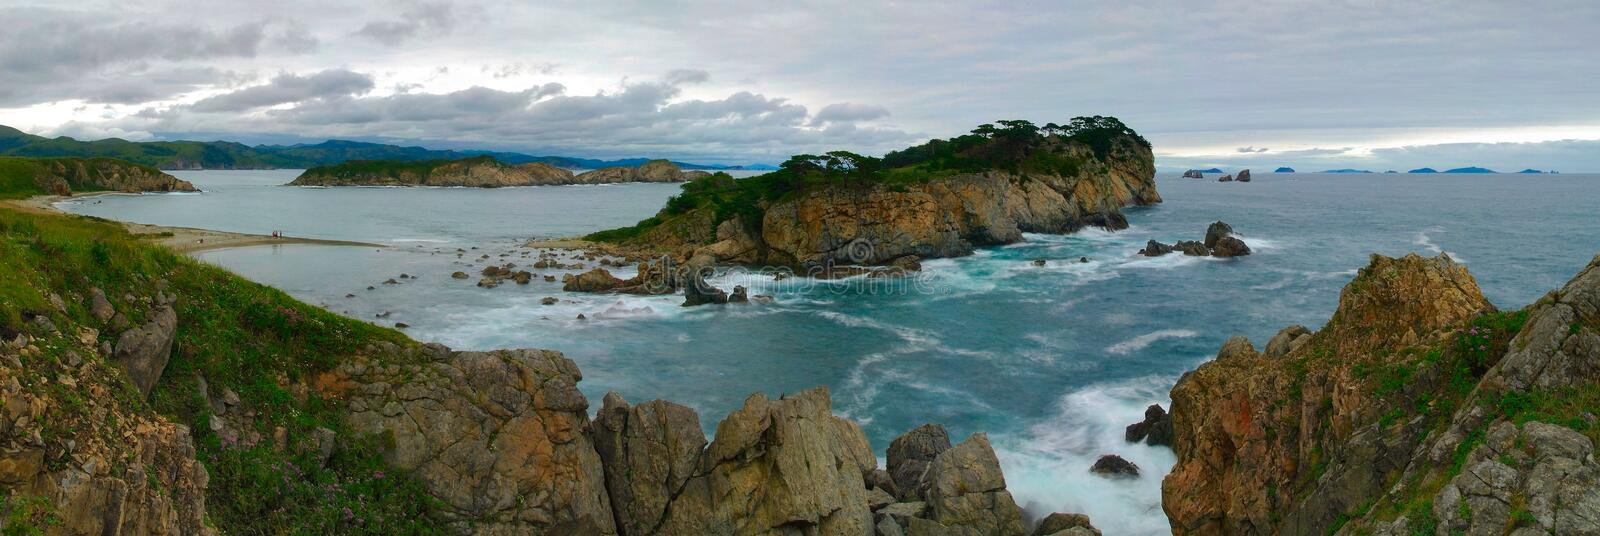 Landscapes of sea of Japan-1 royalty free stock photos